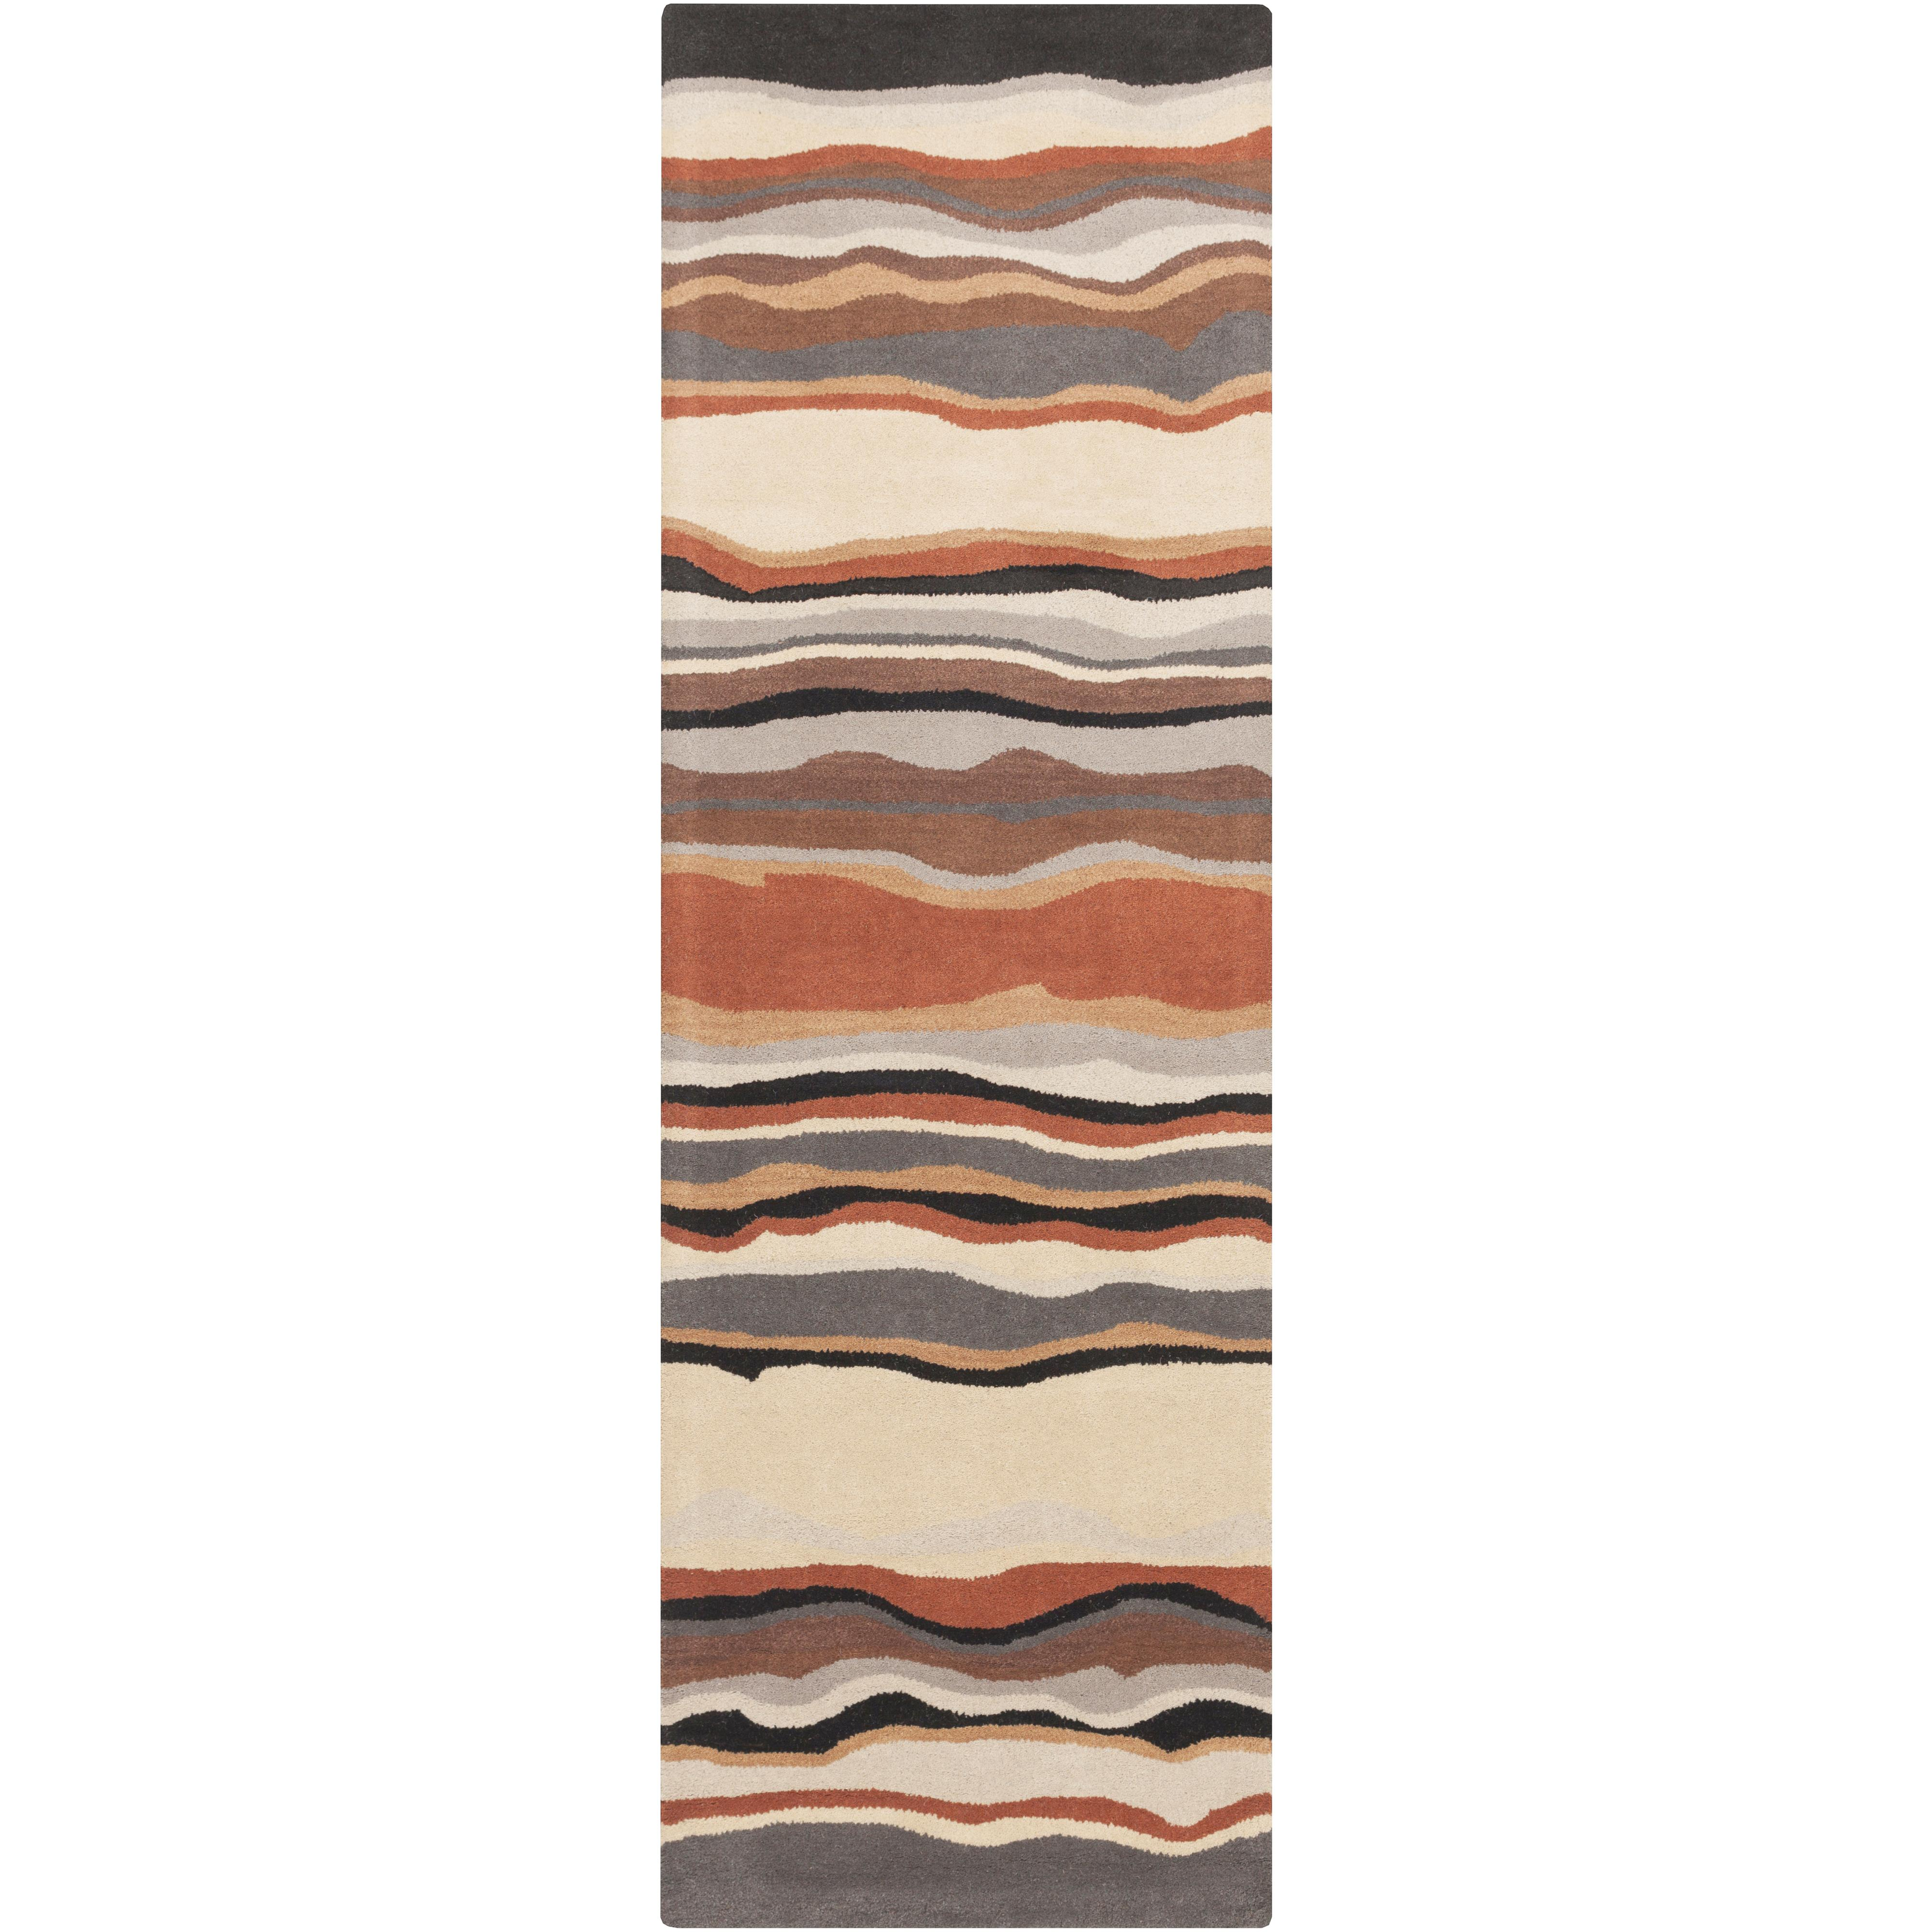 "Surya Rugs Forum 2'6"" x 8' - Item Number: FM7192-268"